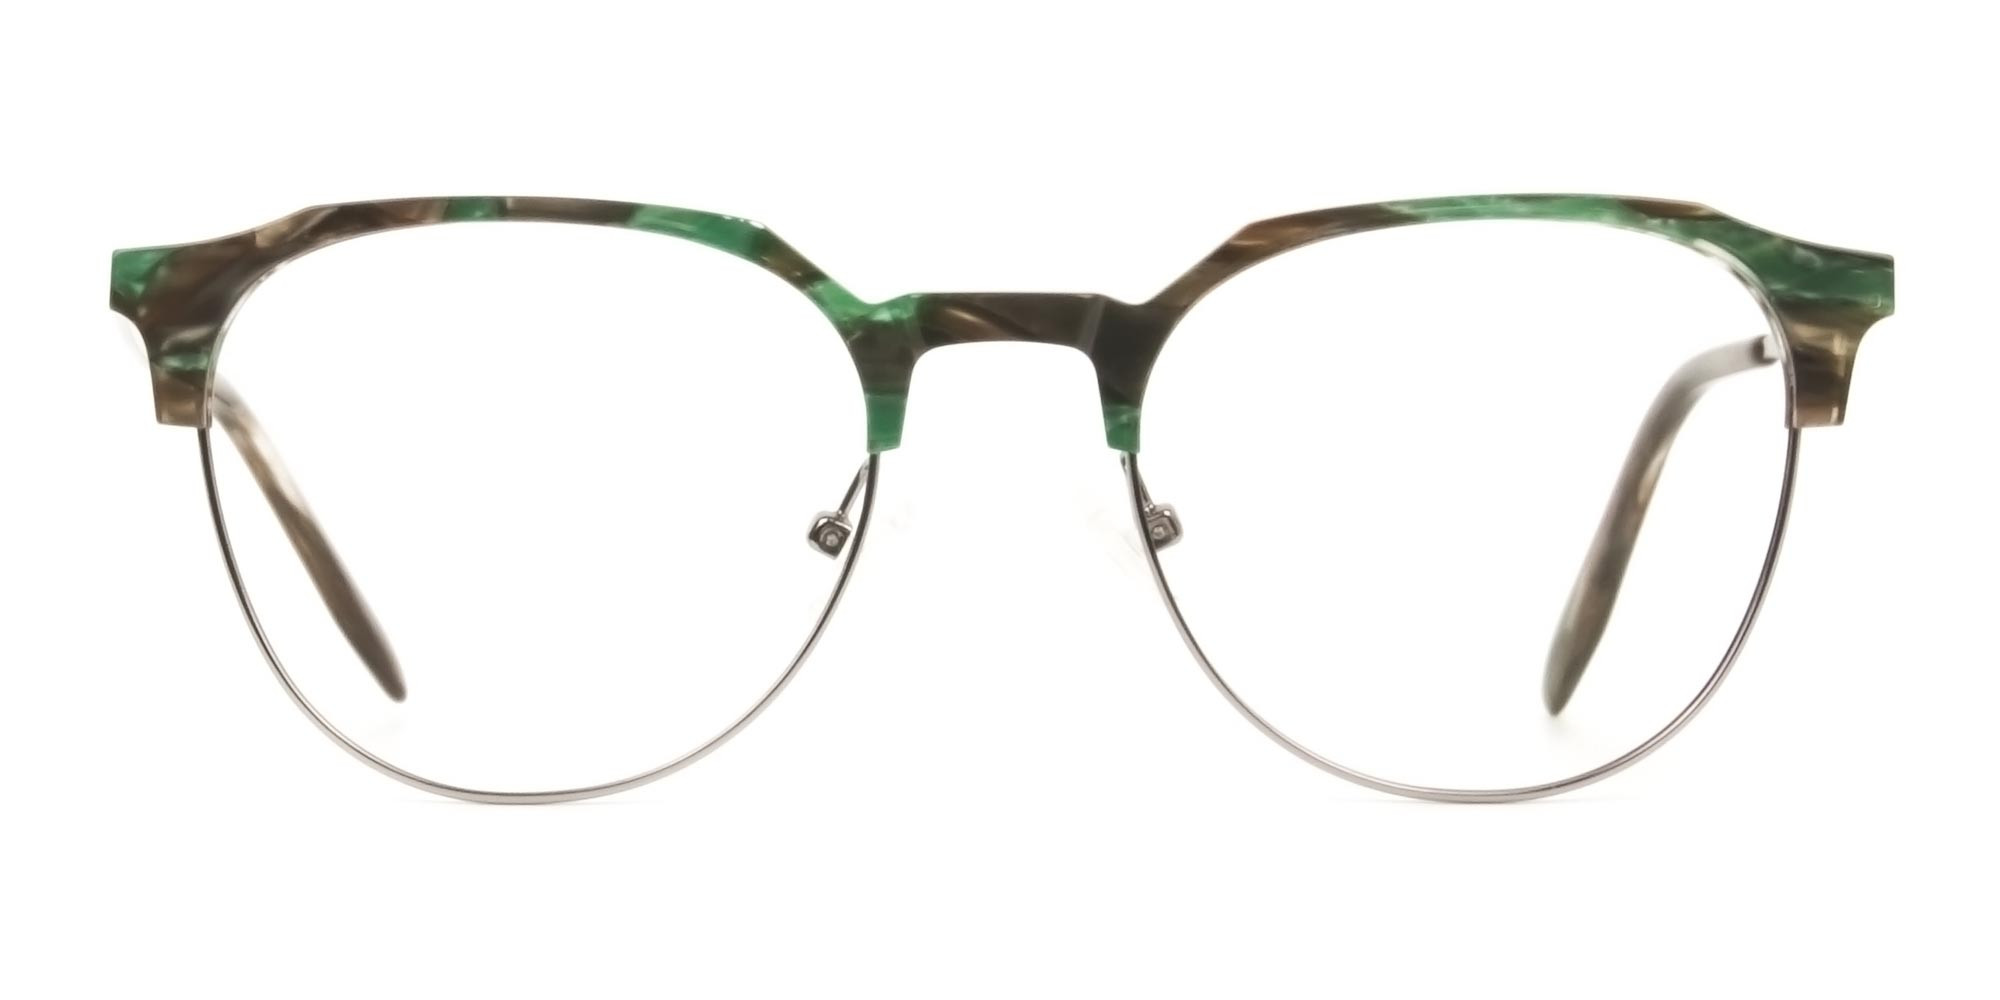 Silver & Marble Jade Green clubmaster classic glasses - 1